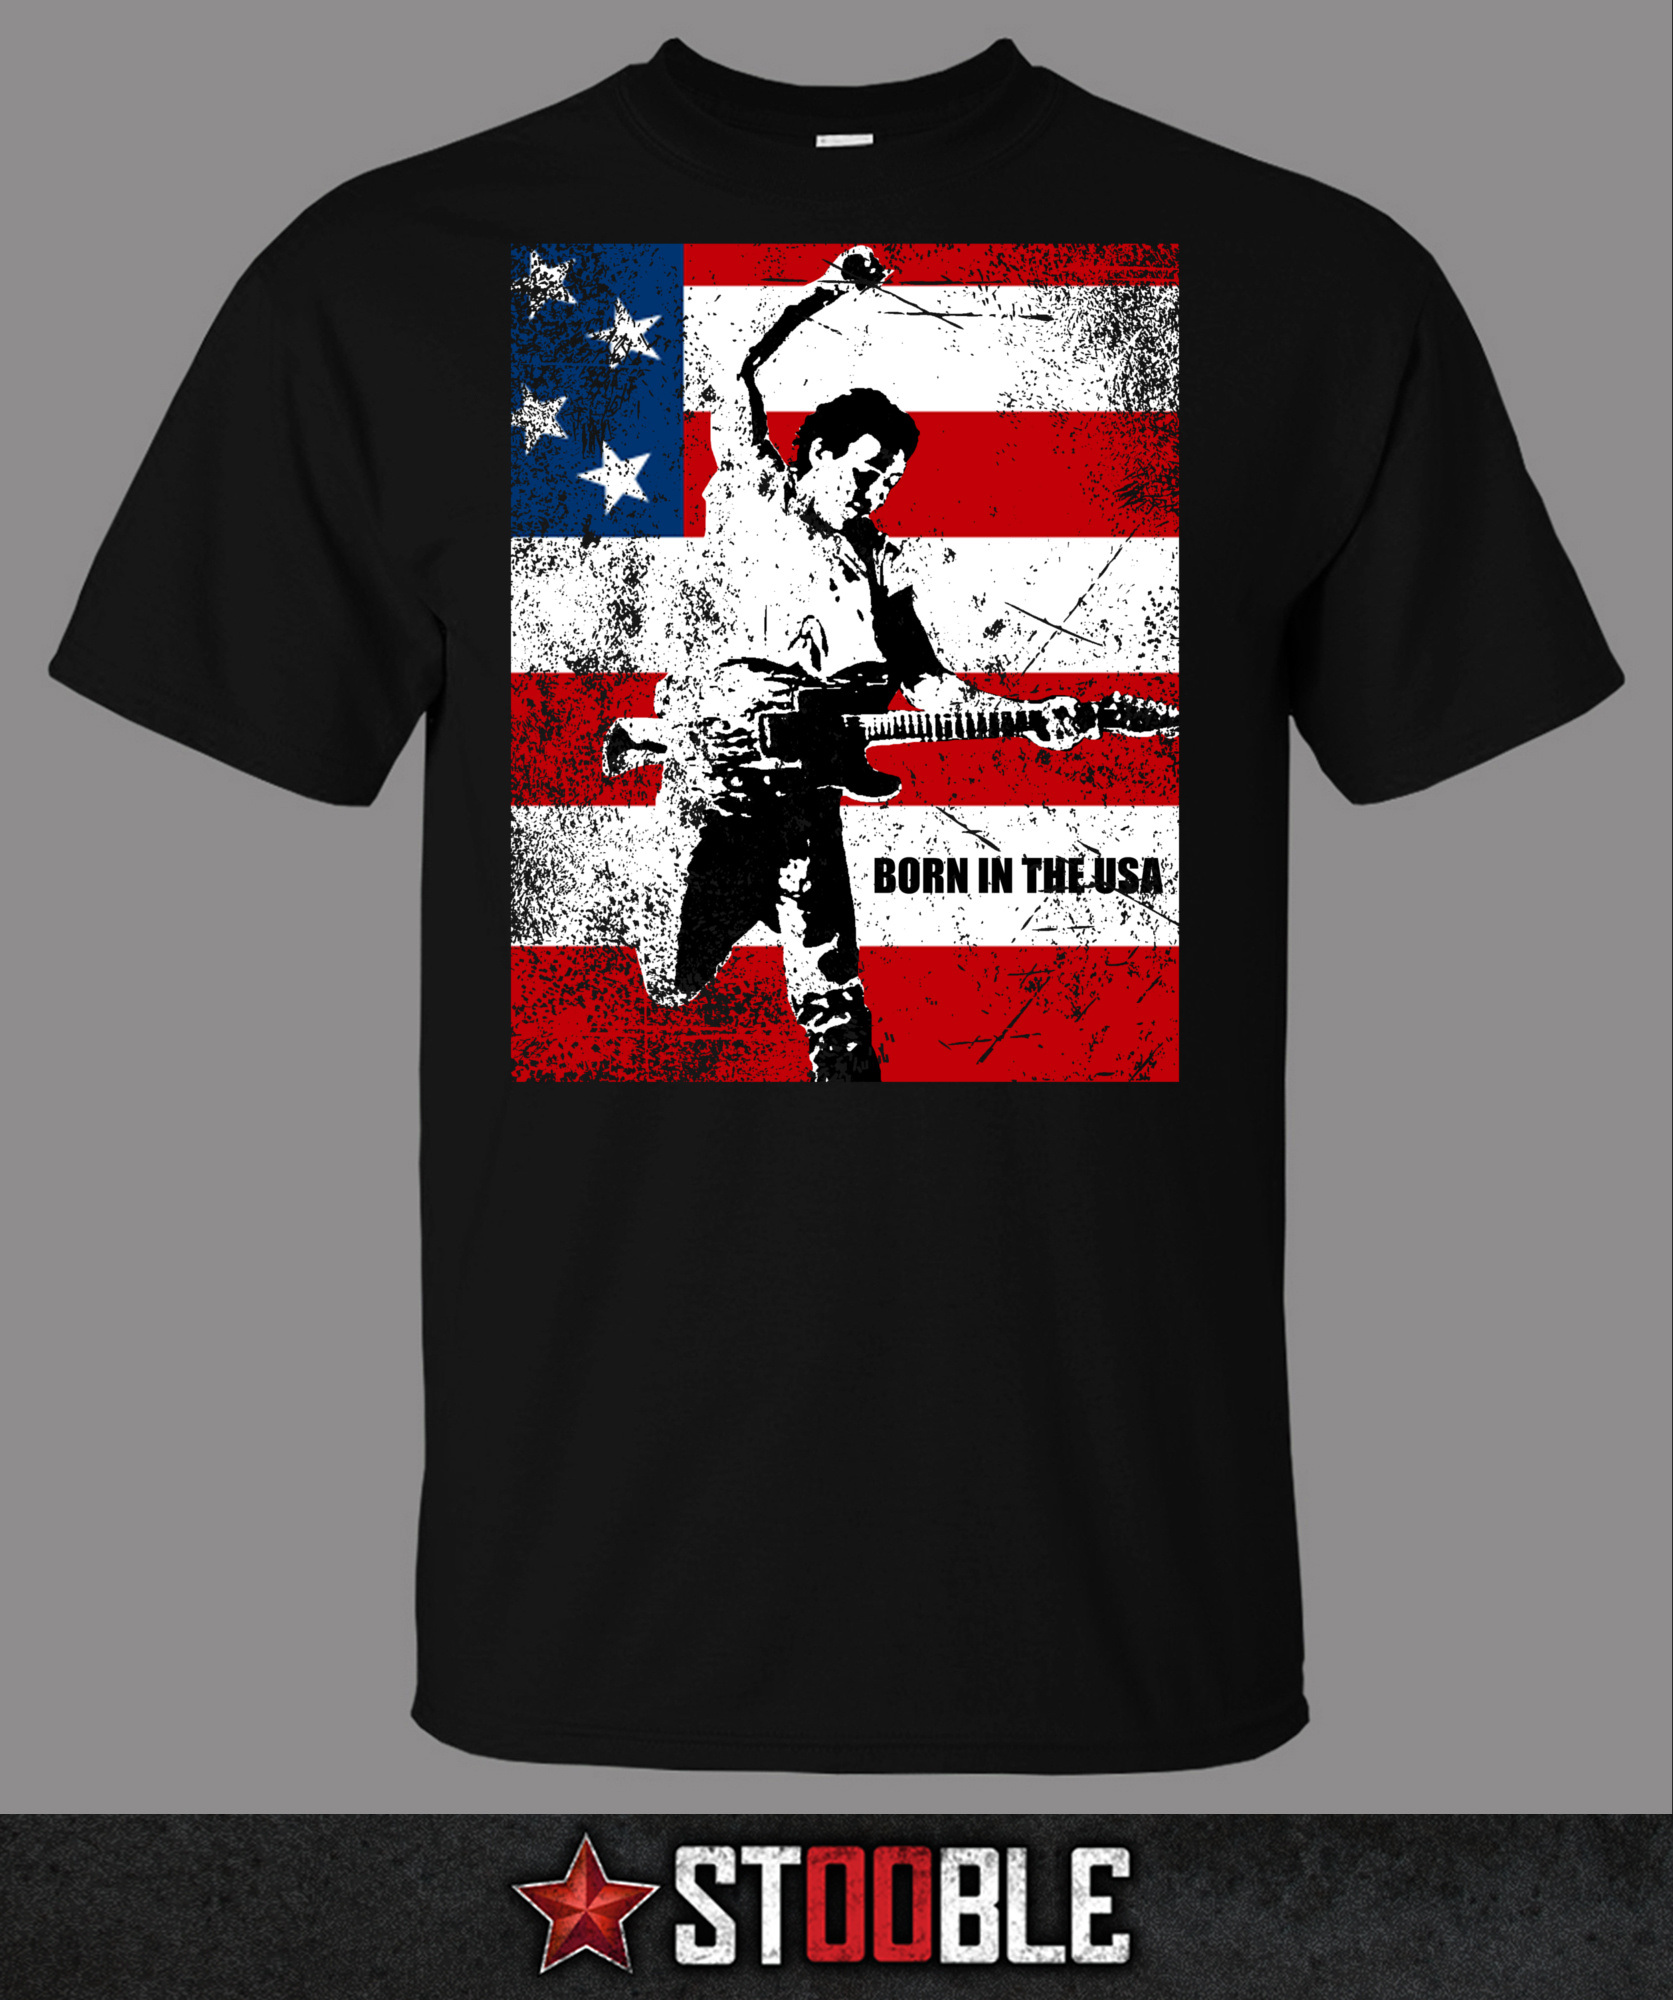 Springsteen Born In The Usa T Shirt Direct From Stockist